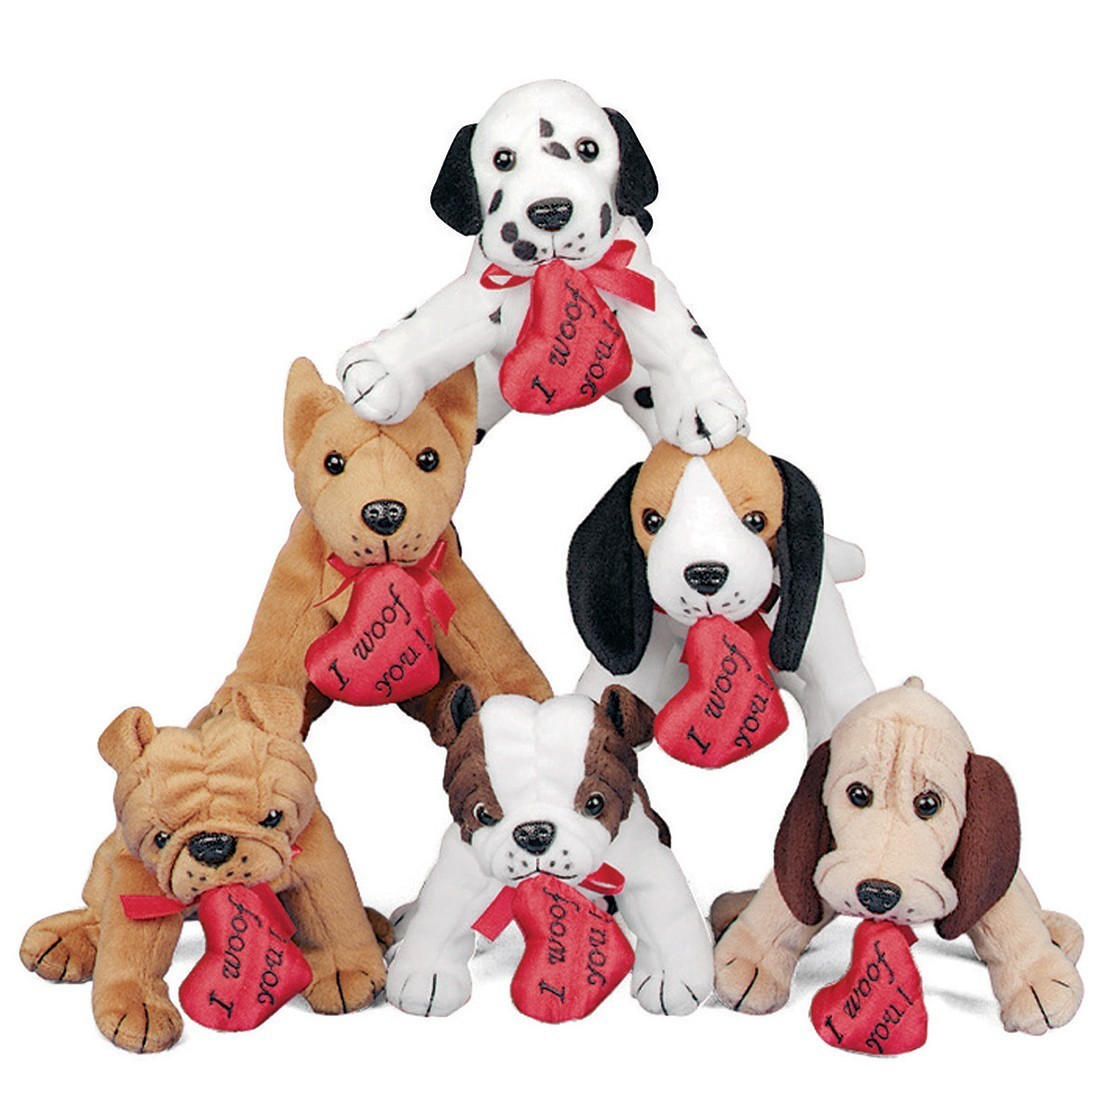 Plush Dogs with Hearts [image]